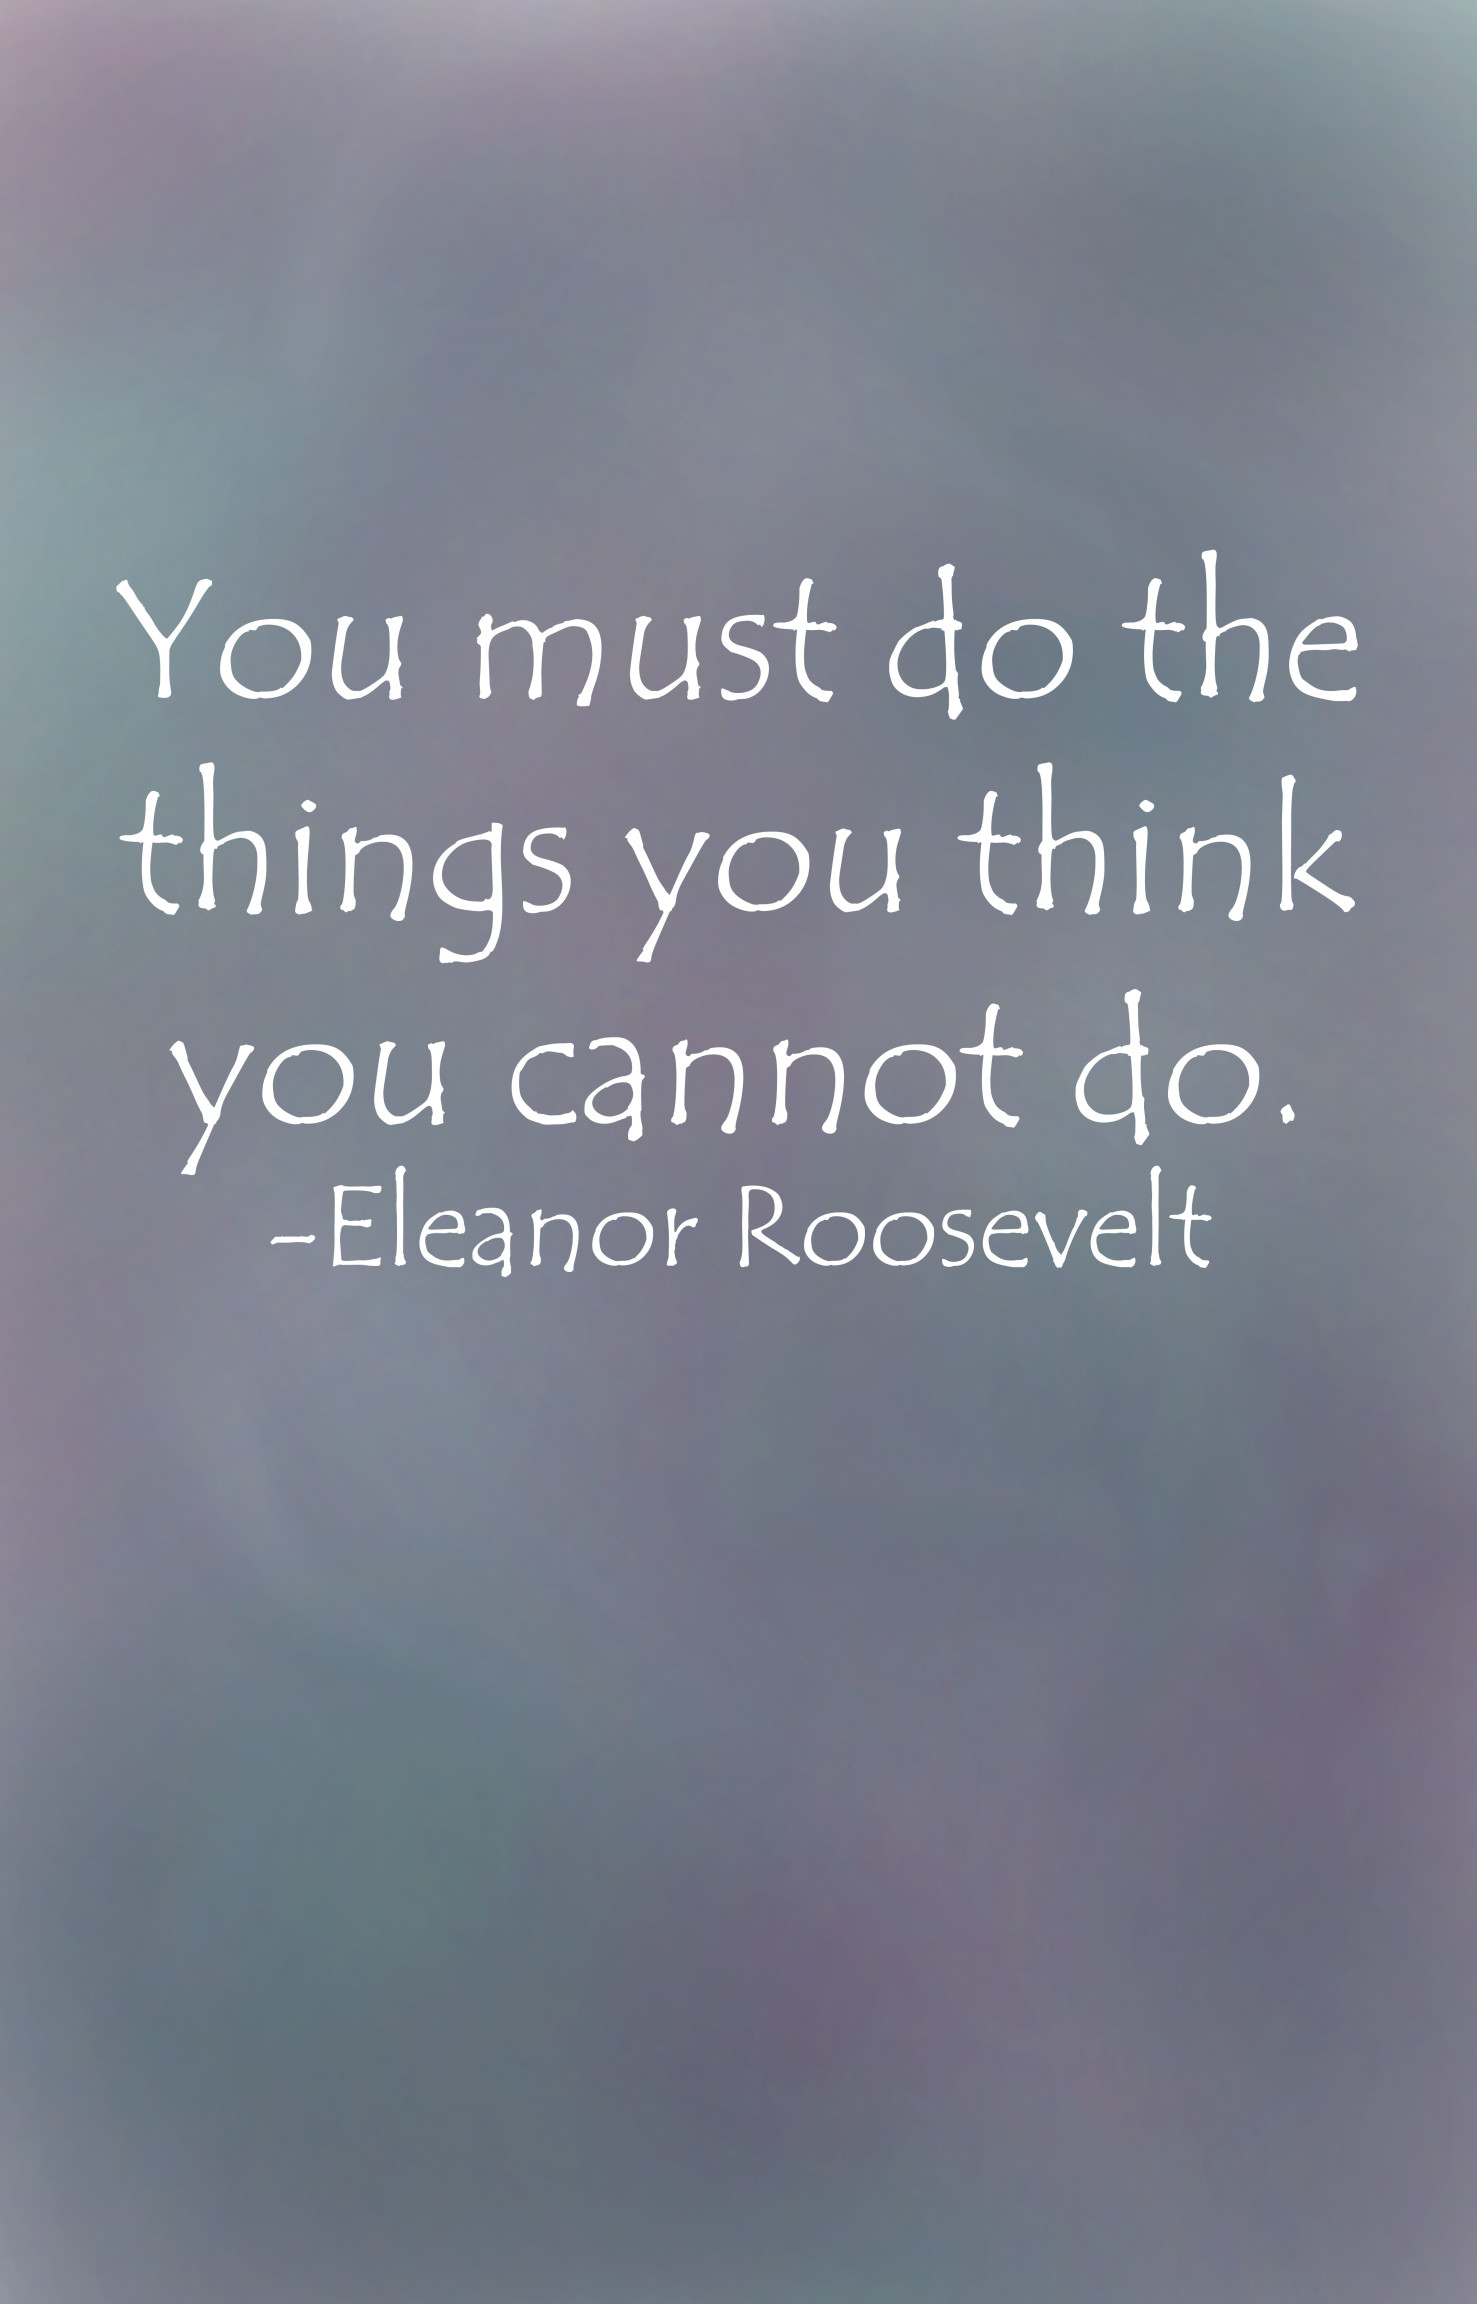 """You must do the things you think you cannot do."" - Eleanor Roosevelt quote on a blue painterly background."